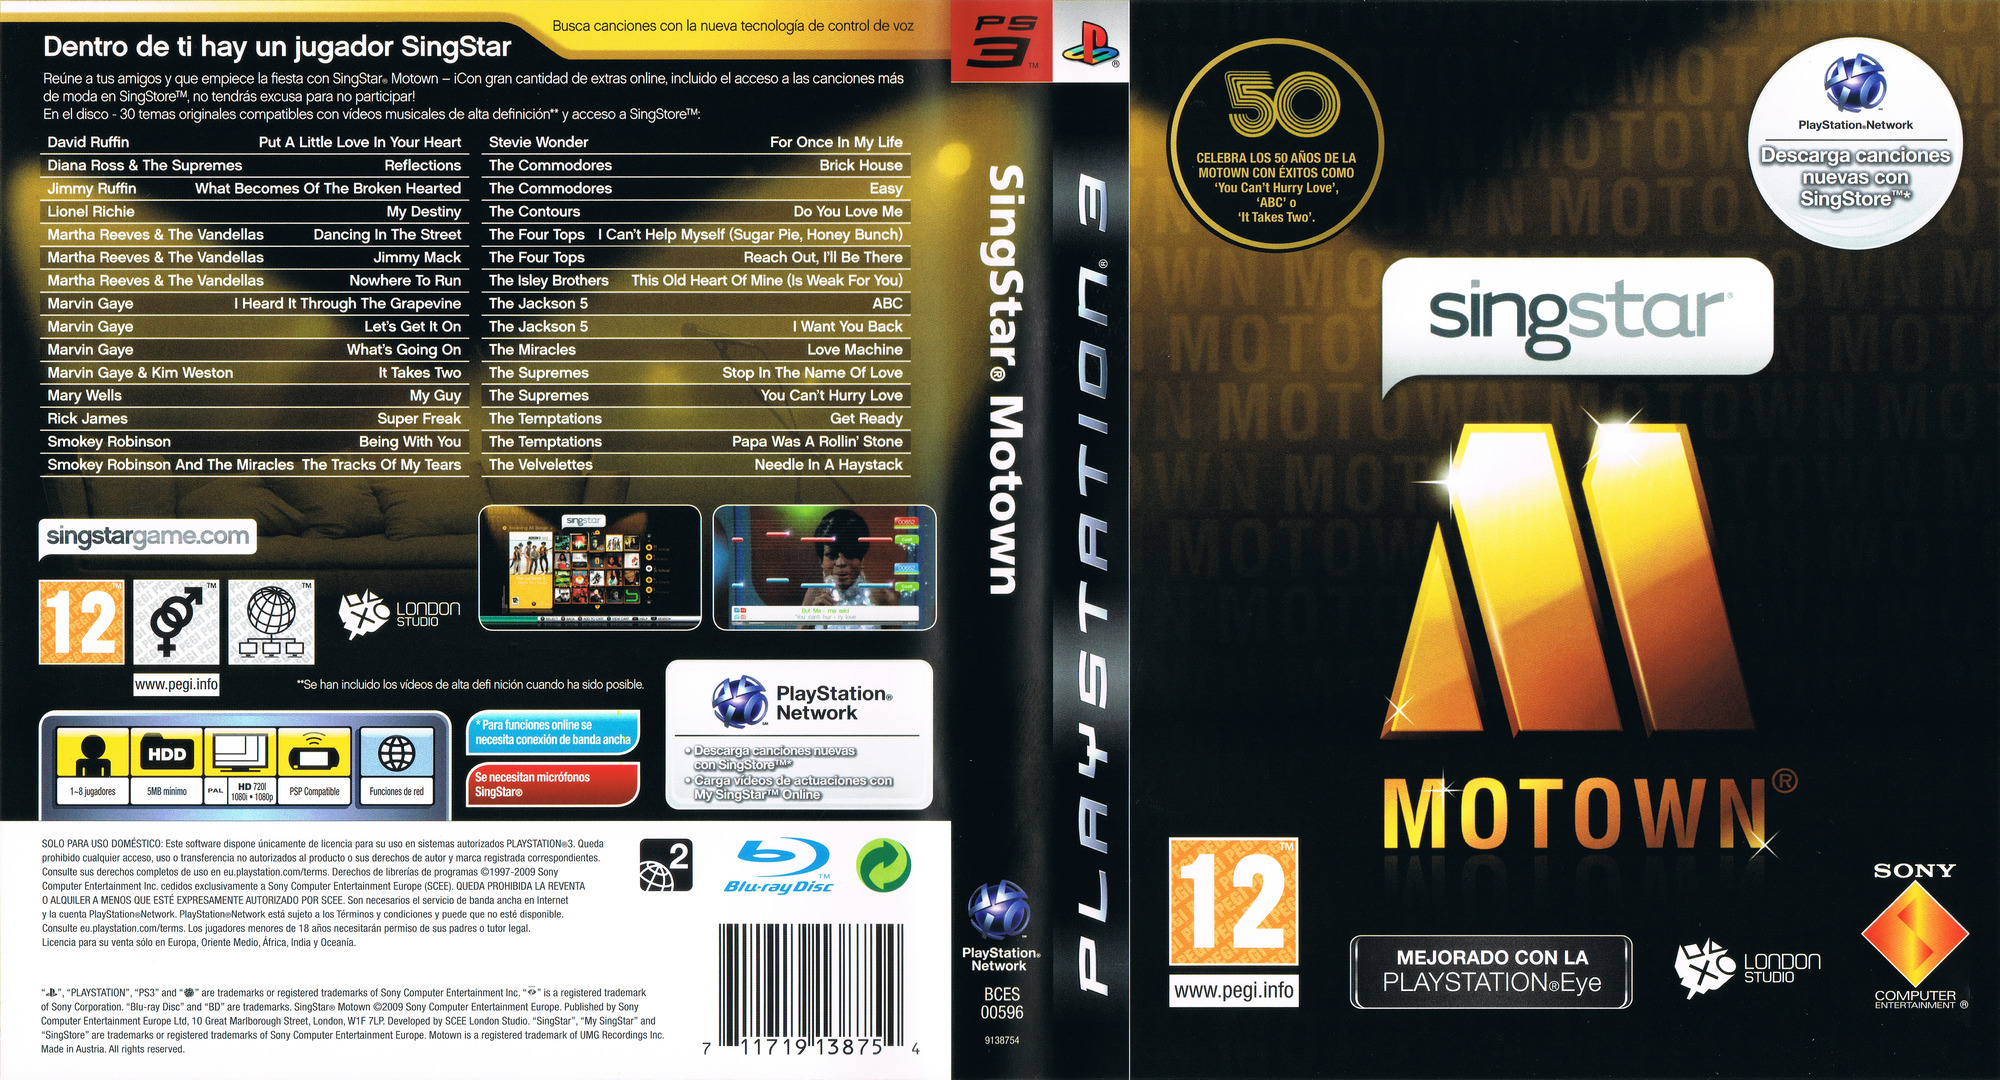 SingStar Motown PS3 coverfullHQ (BCES00596)